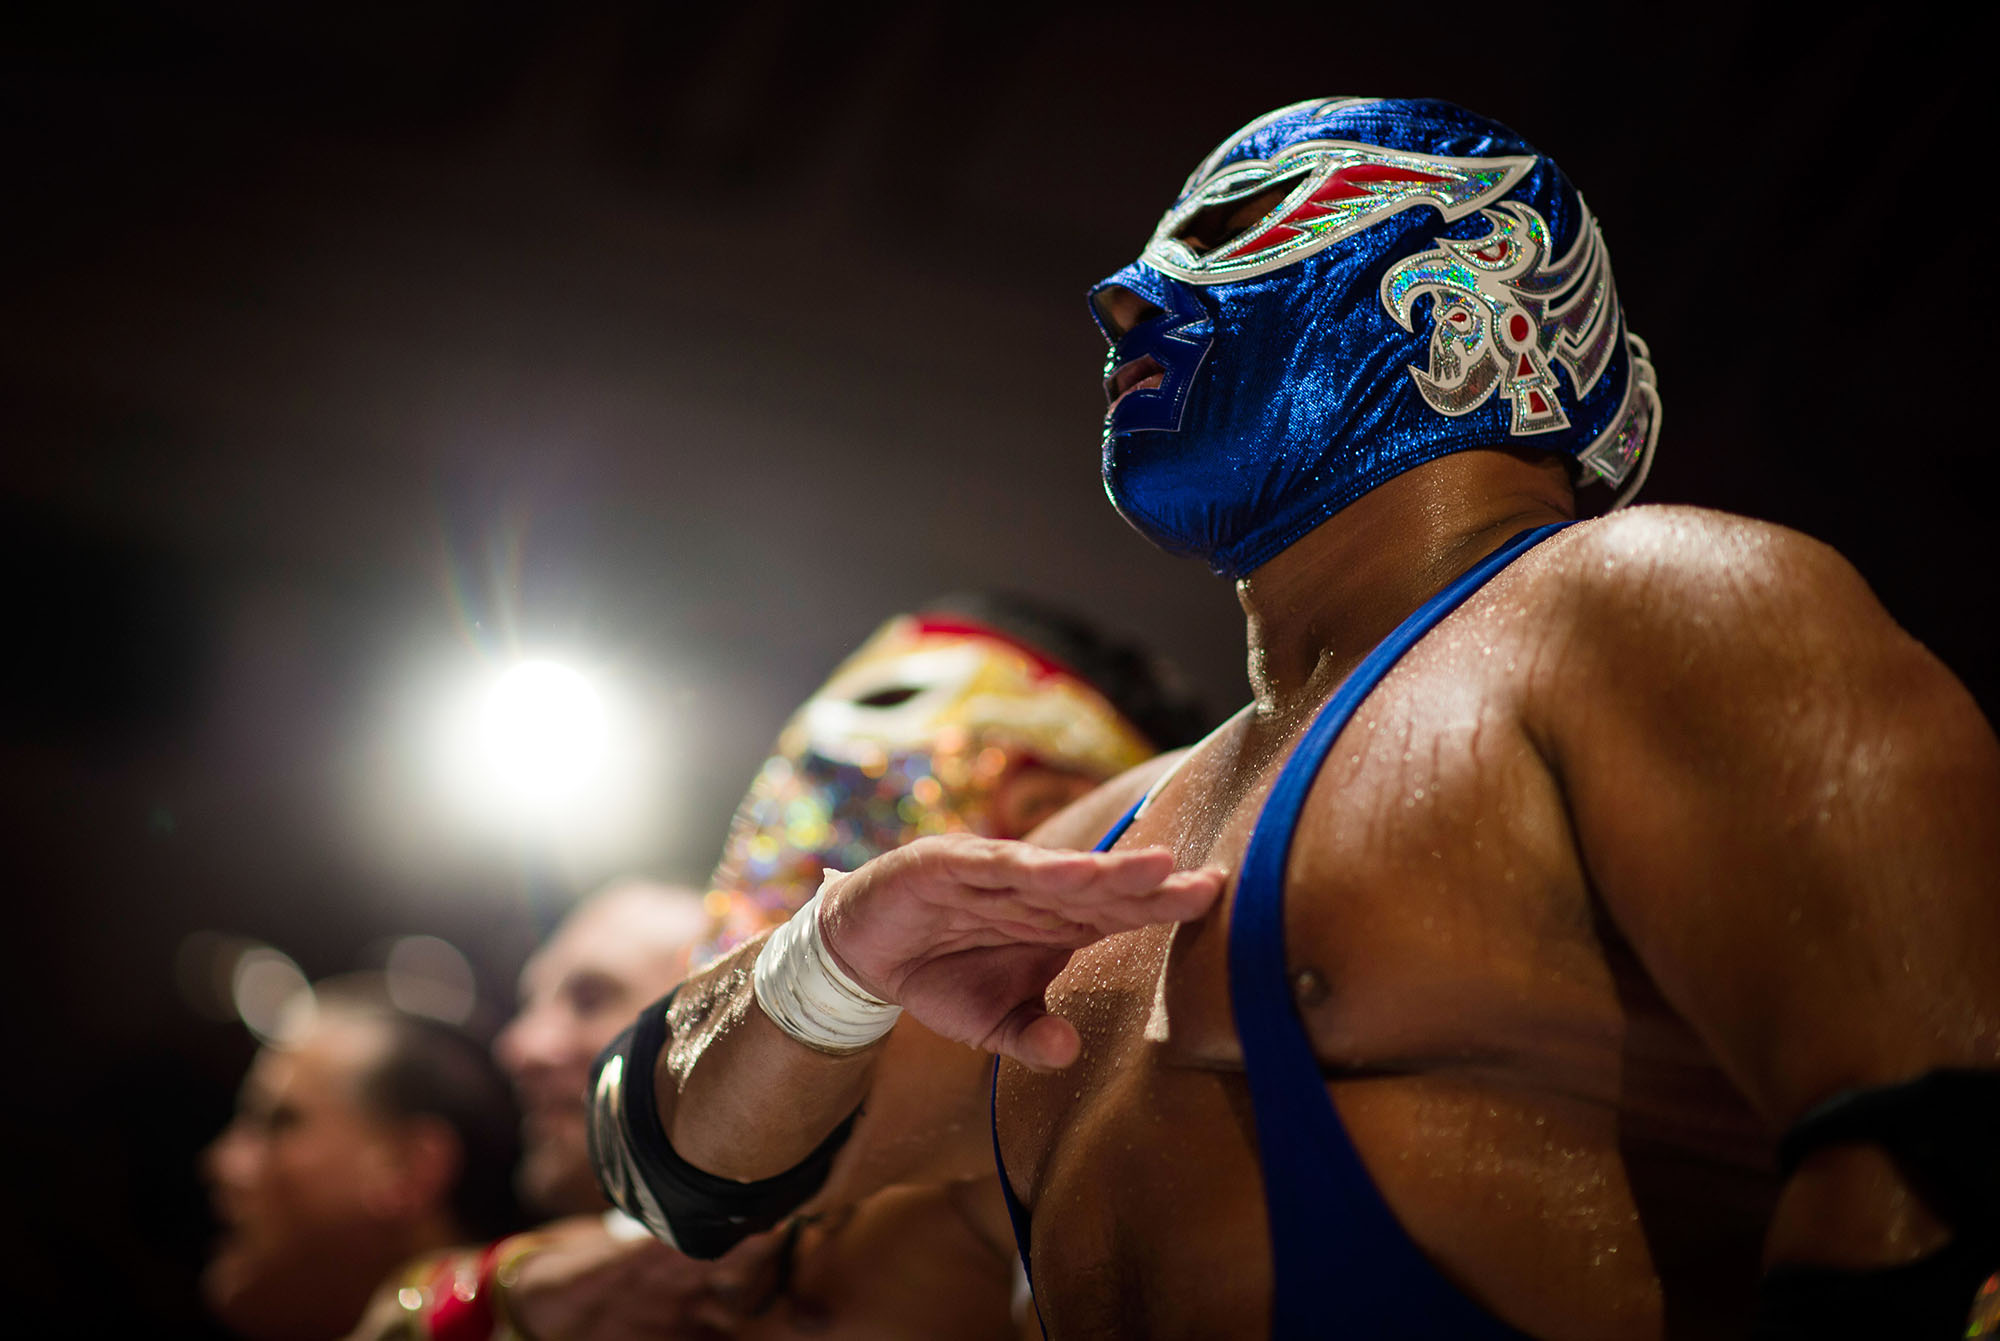 Lucha Libre Mexico Lucha Libre The Culture Of A Kicking Travelcoterie